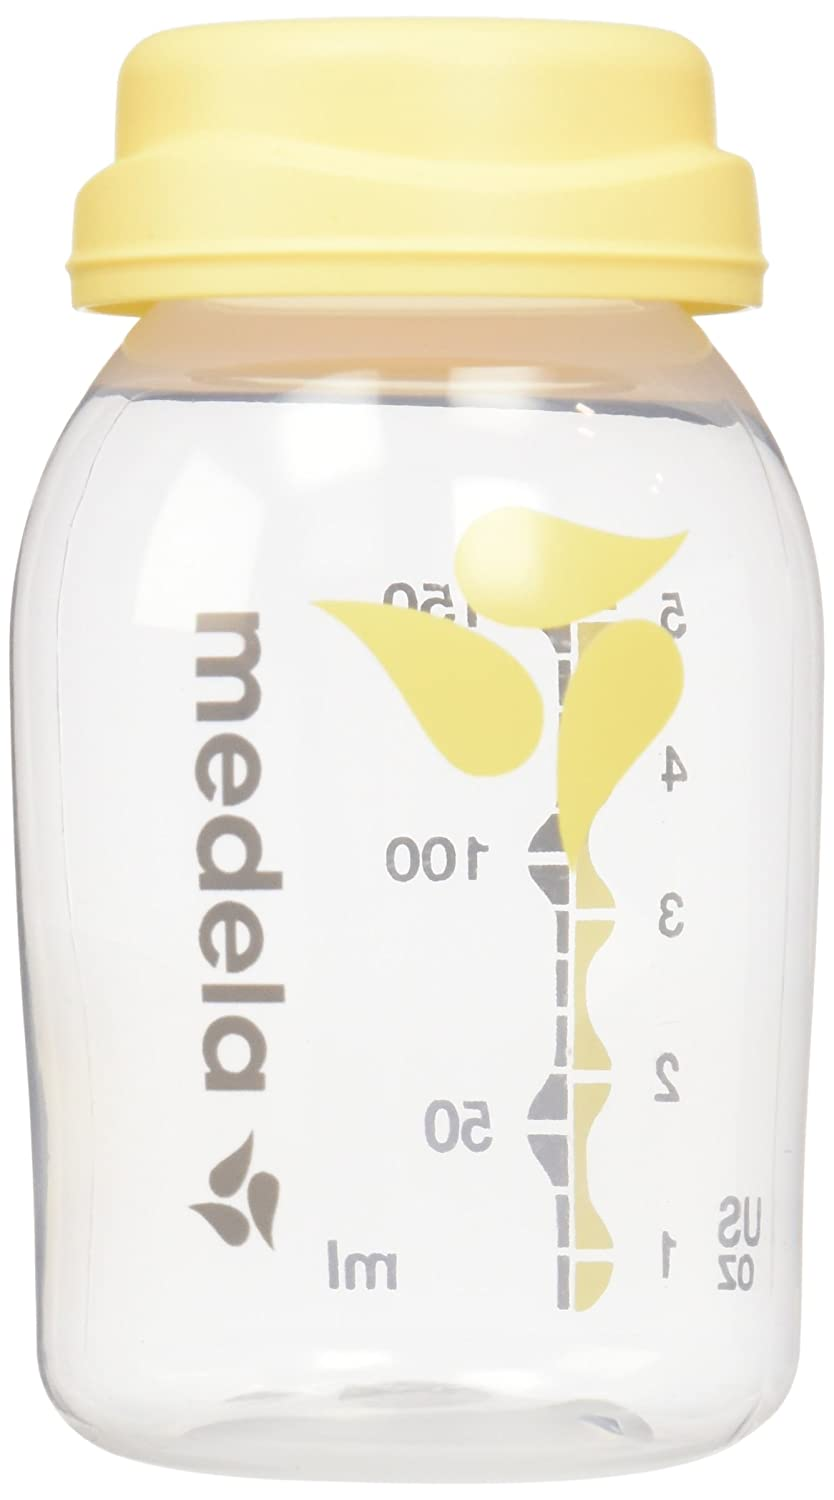 Medela Breast Milk Collection and Storage Bottles, 5 Ounce, 6 Count 87095